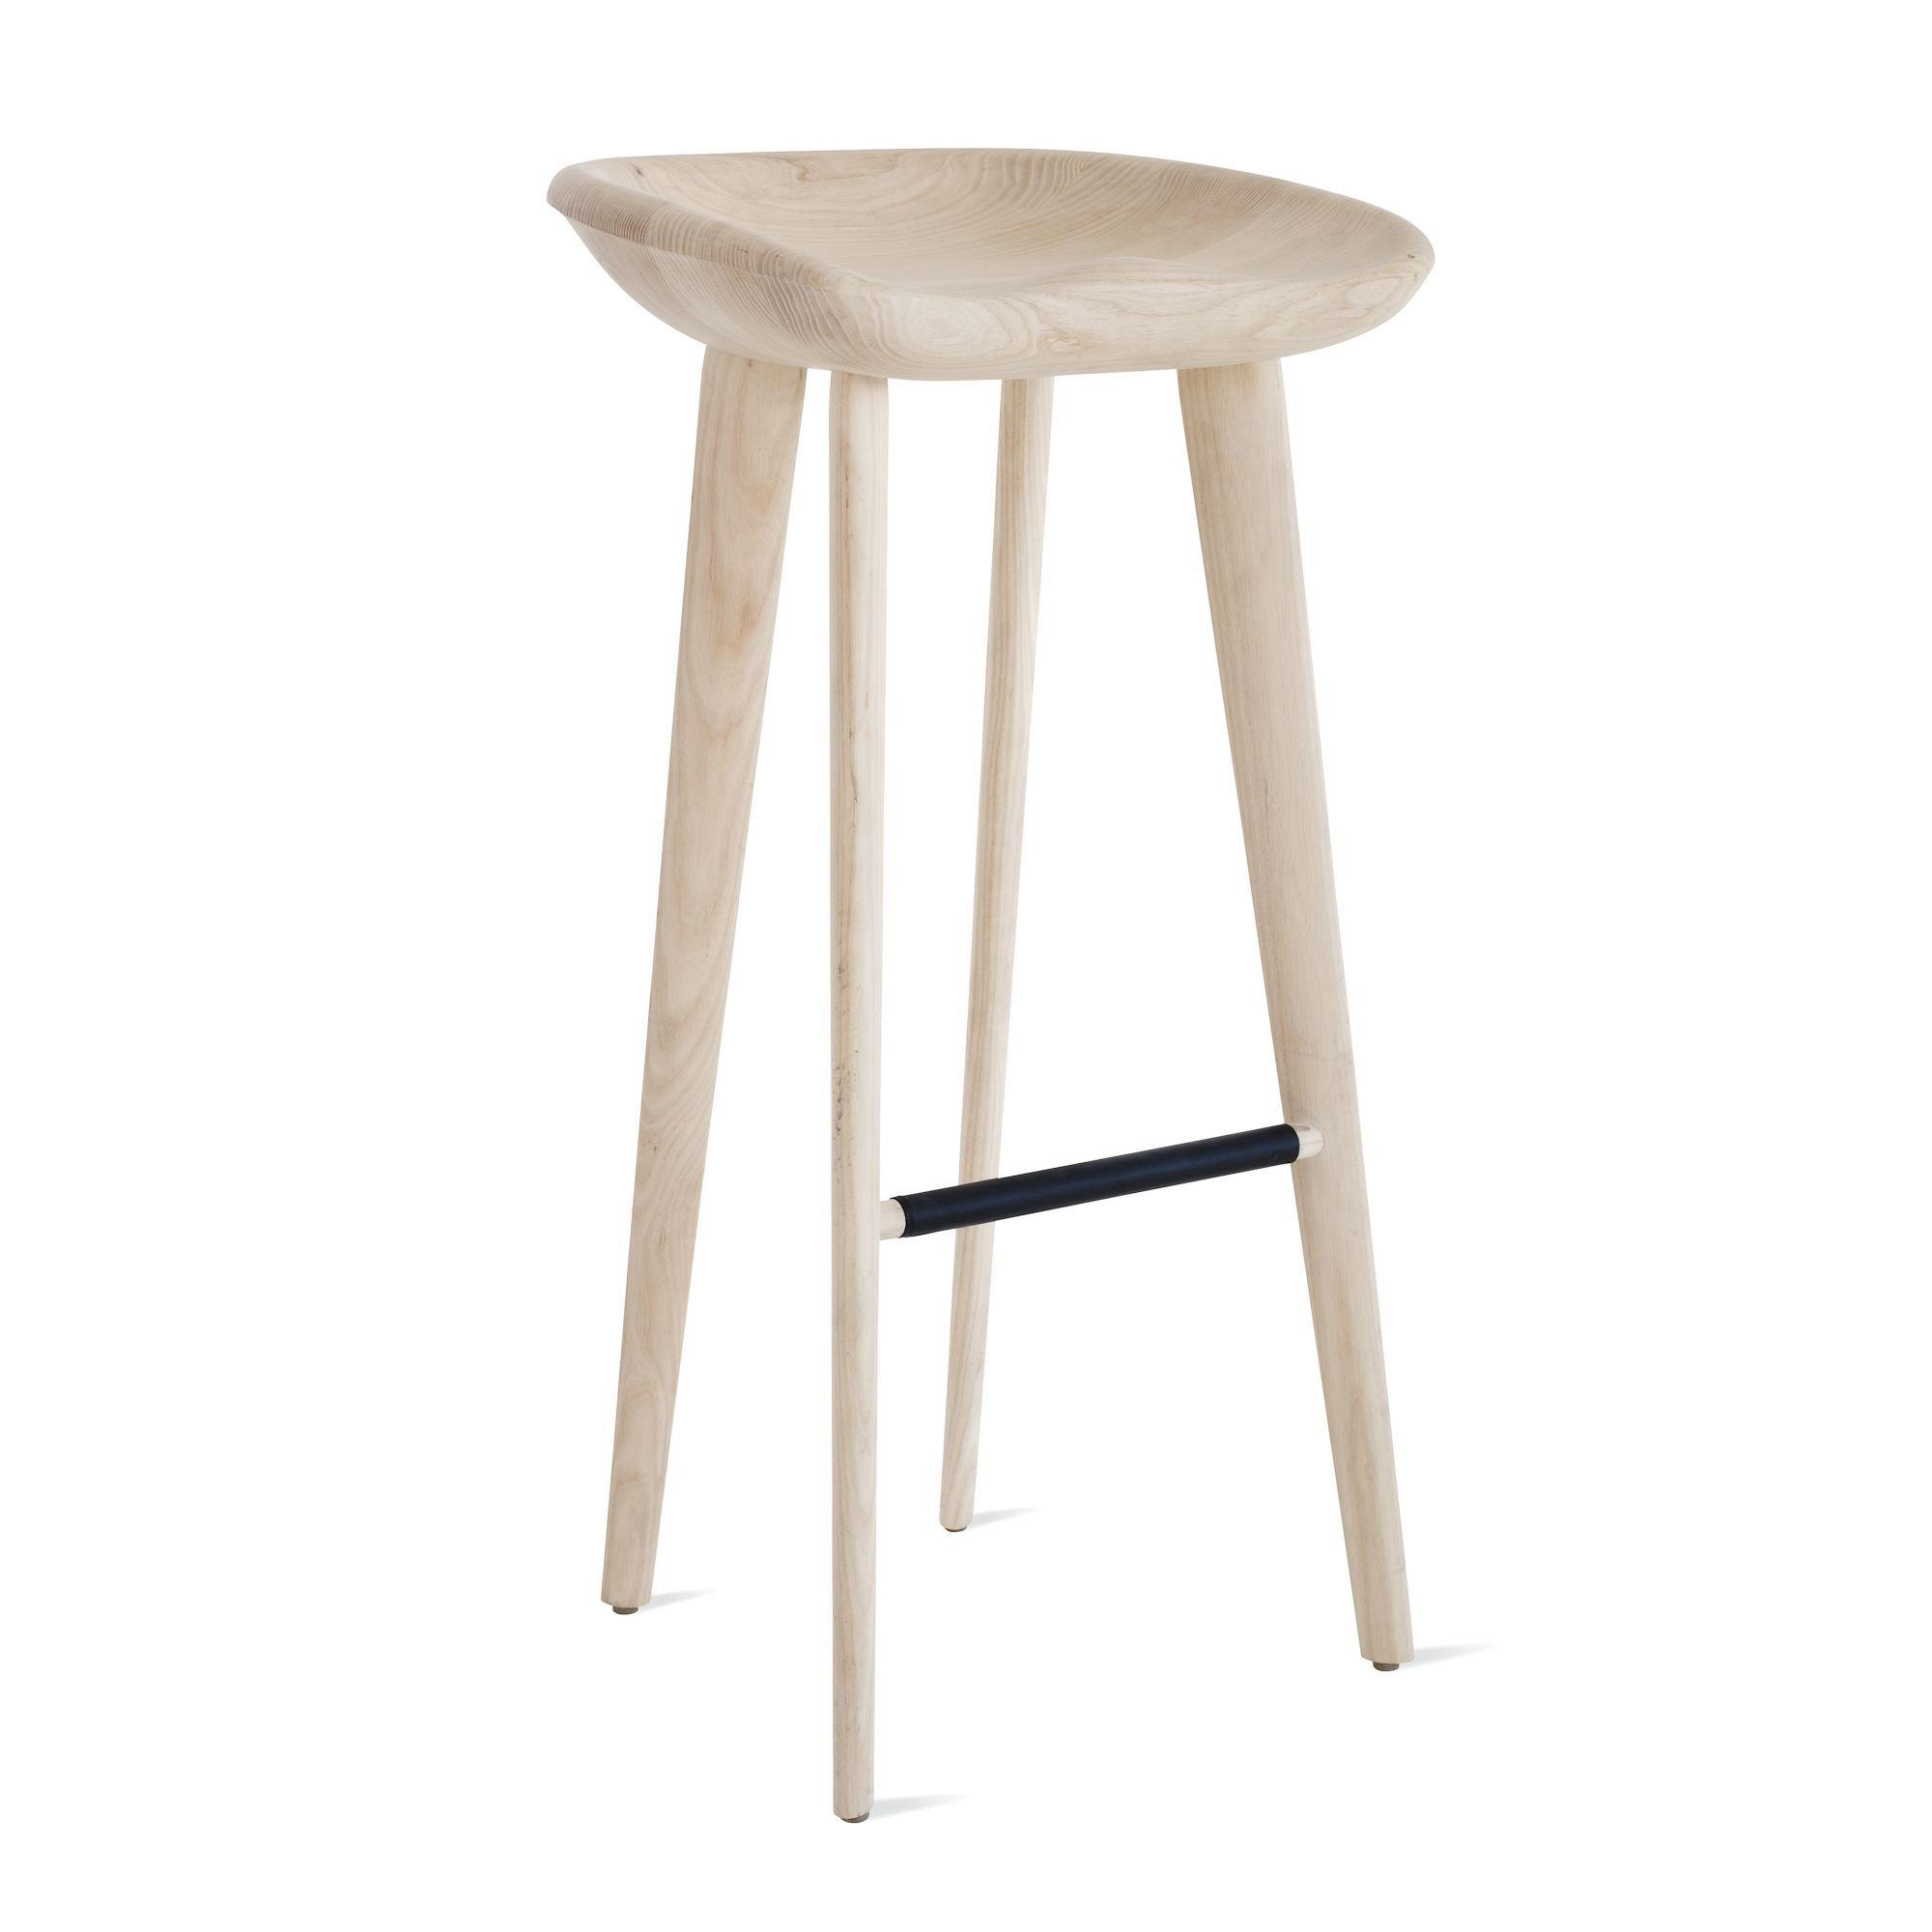 Astonishing Tractor Barstool In 2019 Final Cut Mcallister Bar Stools Caraccident5 Cool Chair Designs And Ideas Caraccident5Info